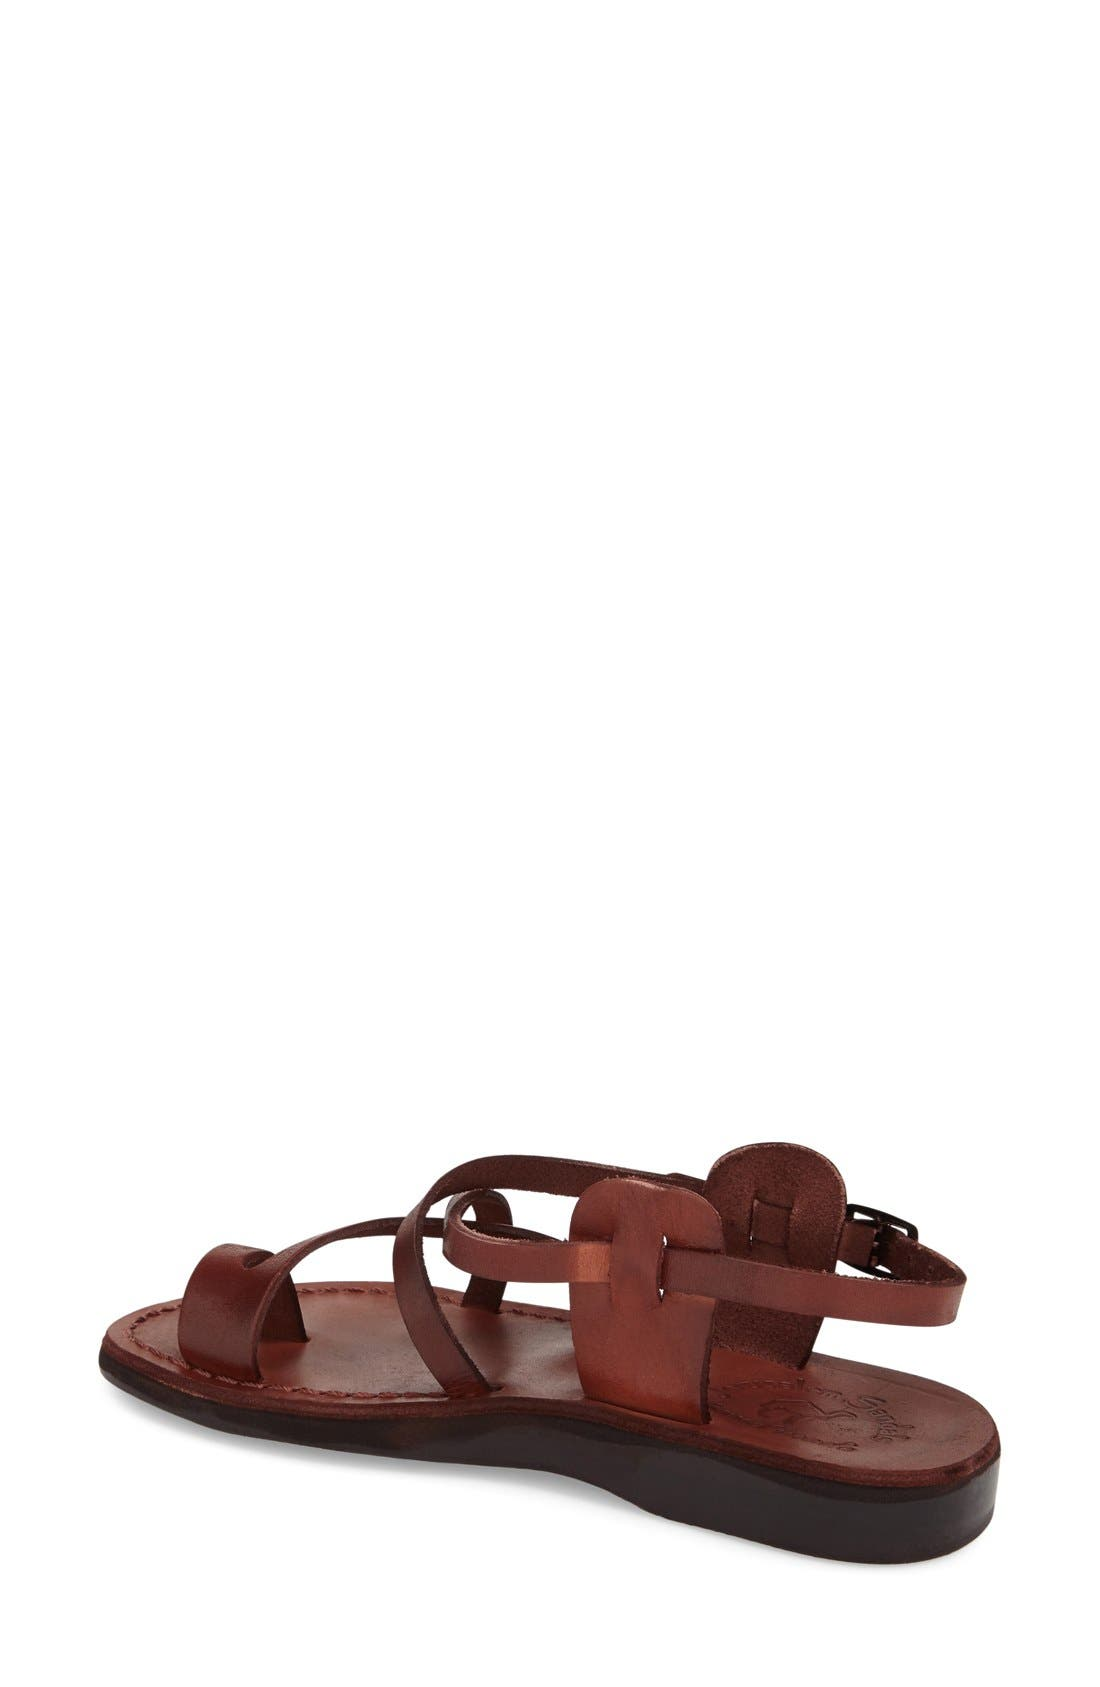 'The Good Shepard' Strappy Sandal,                             Alternate thumbnail 2, color,                             Brown Leather